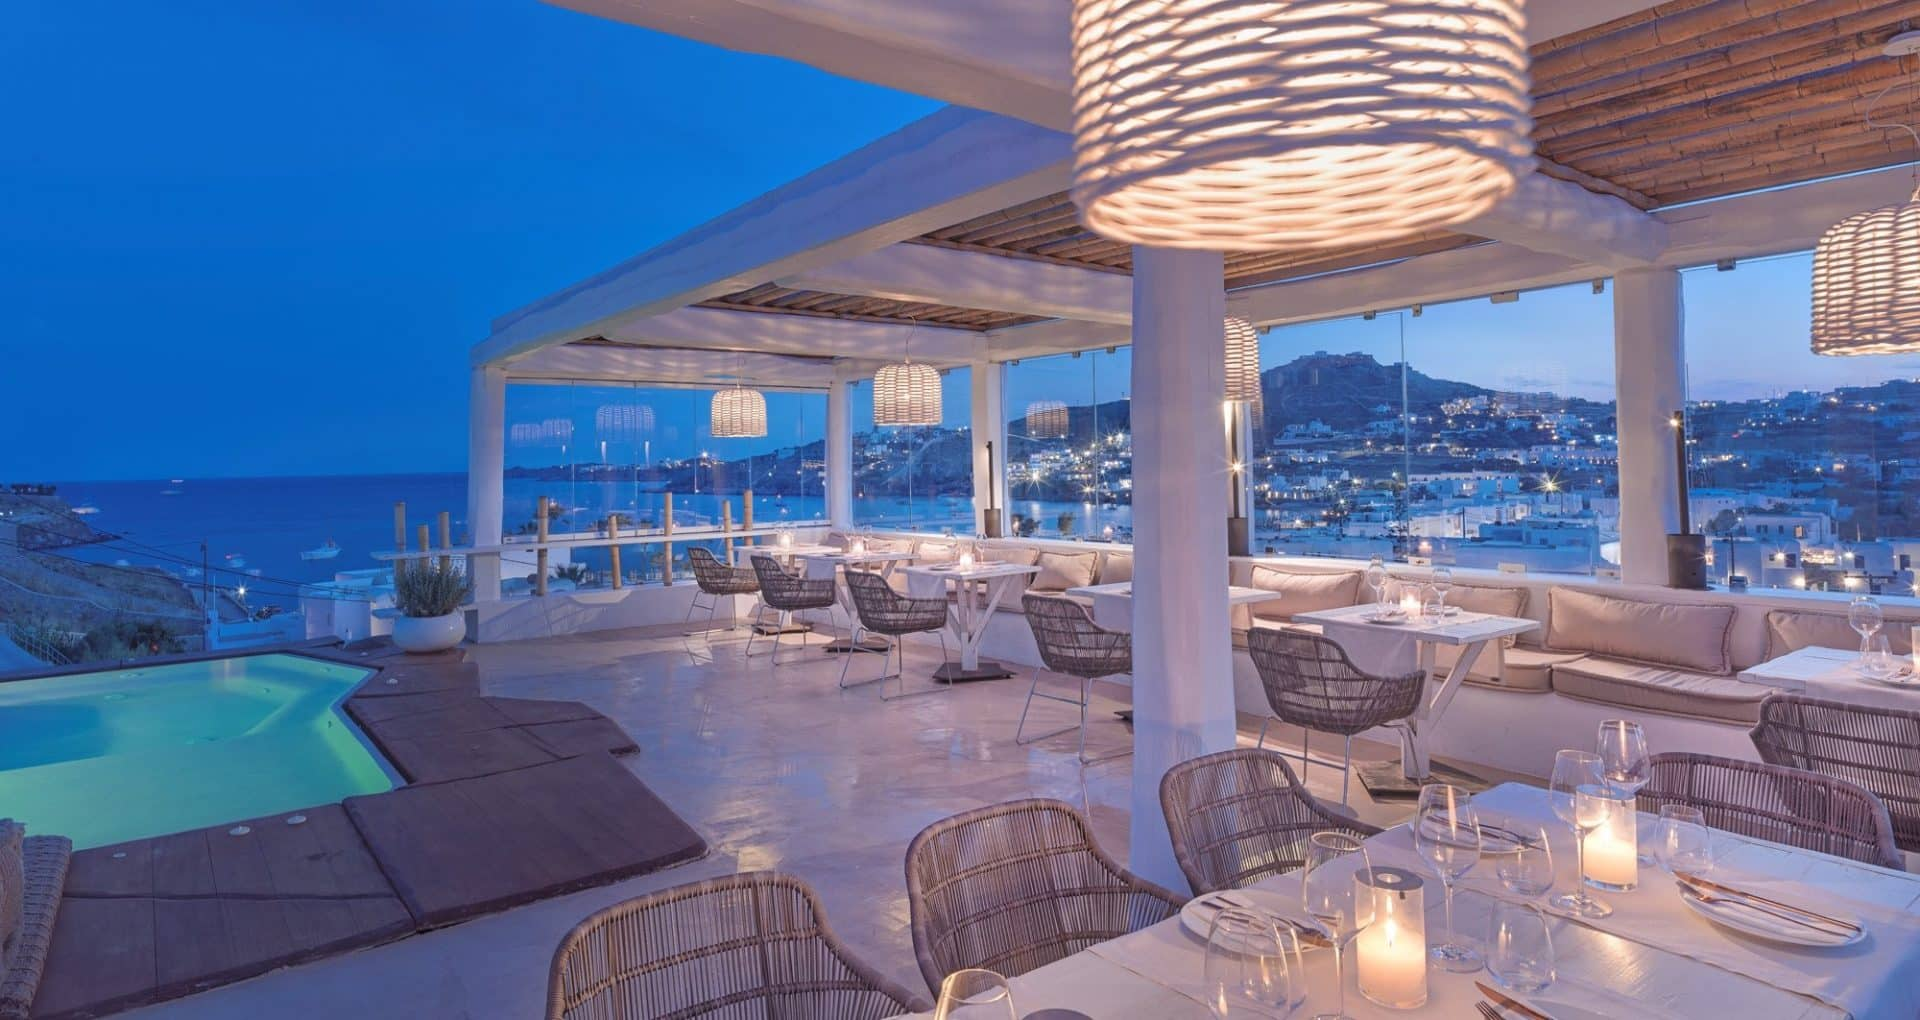 Romantic Beach Bars in Mykonos